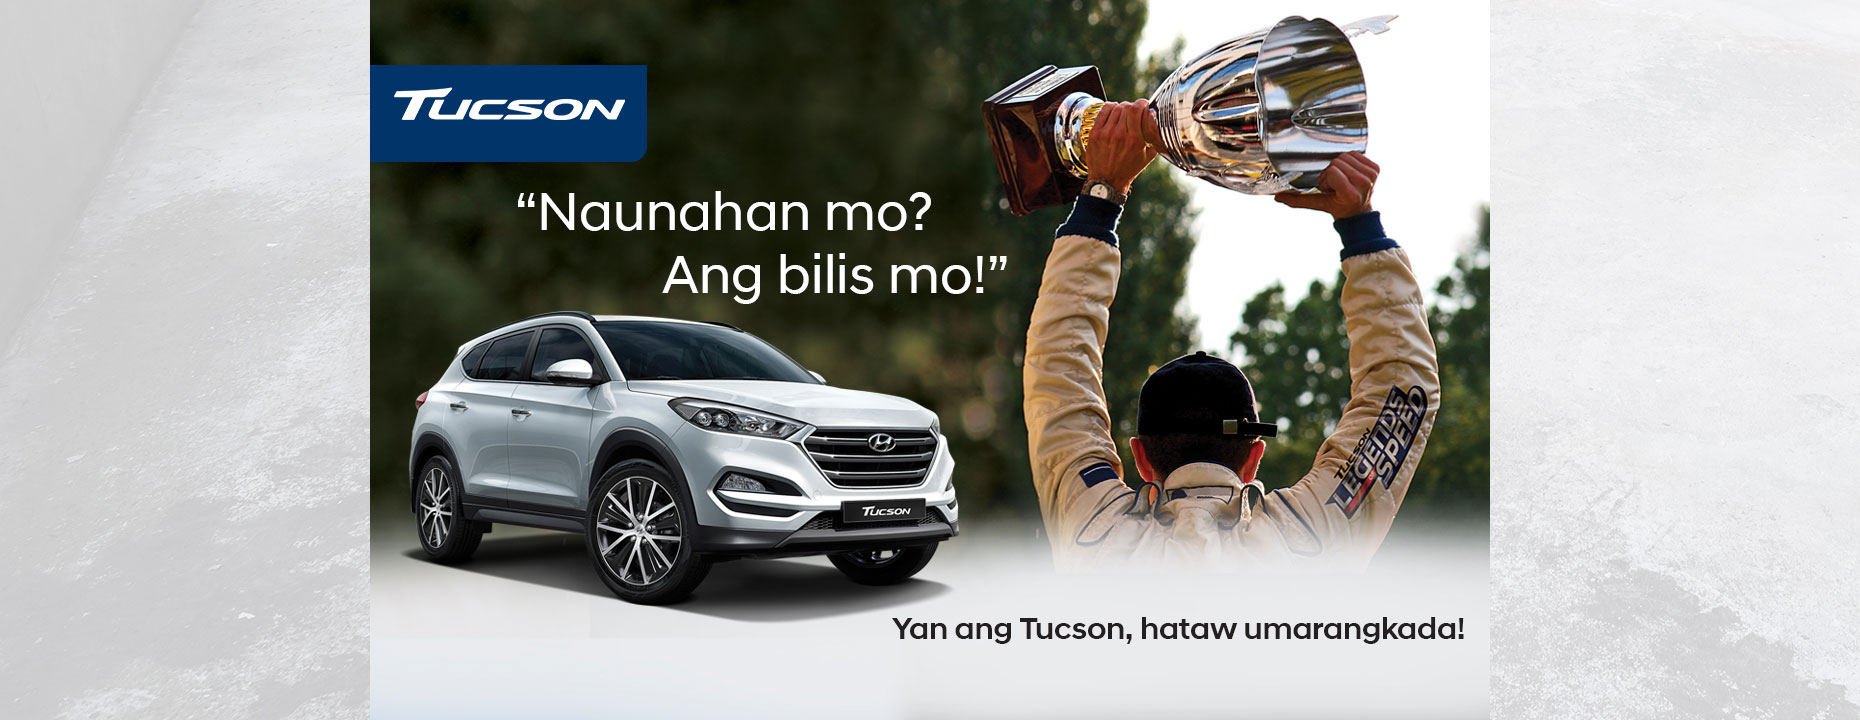 Hyundai Philippines Cars Suvs Vans Trucks And Buses Hd65 Wiring Diagram Tucson Engineered For Speed